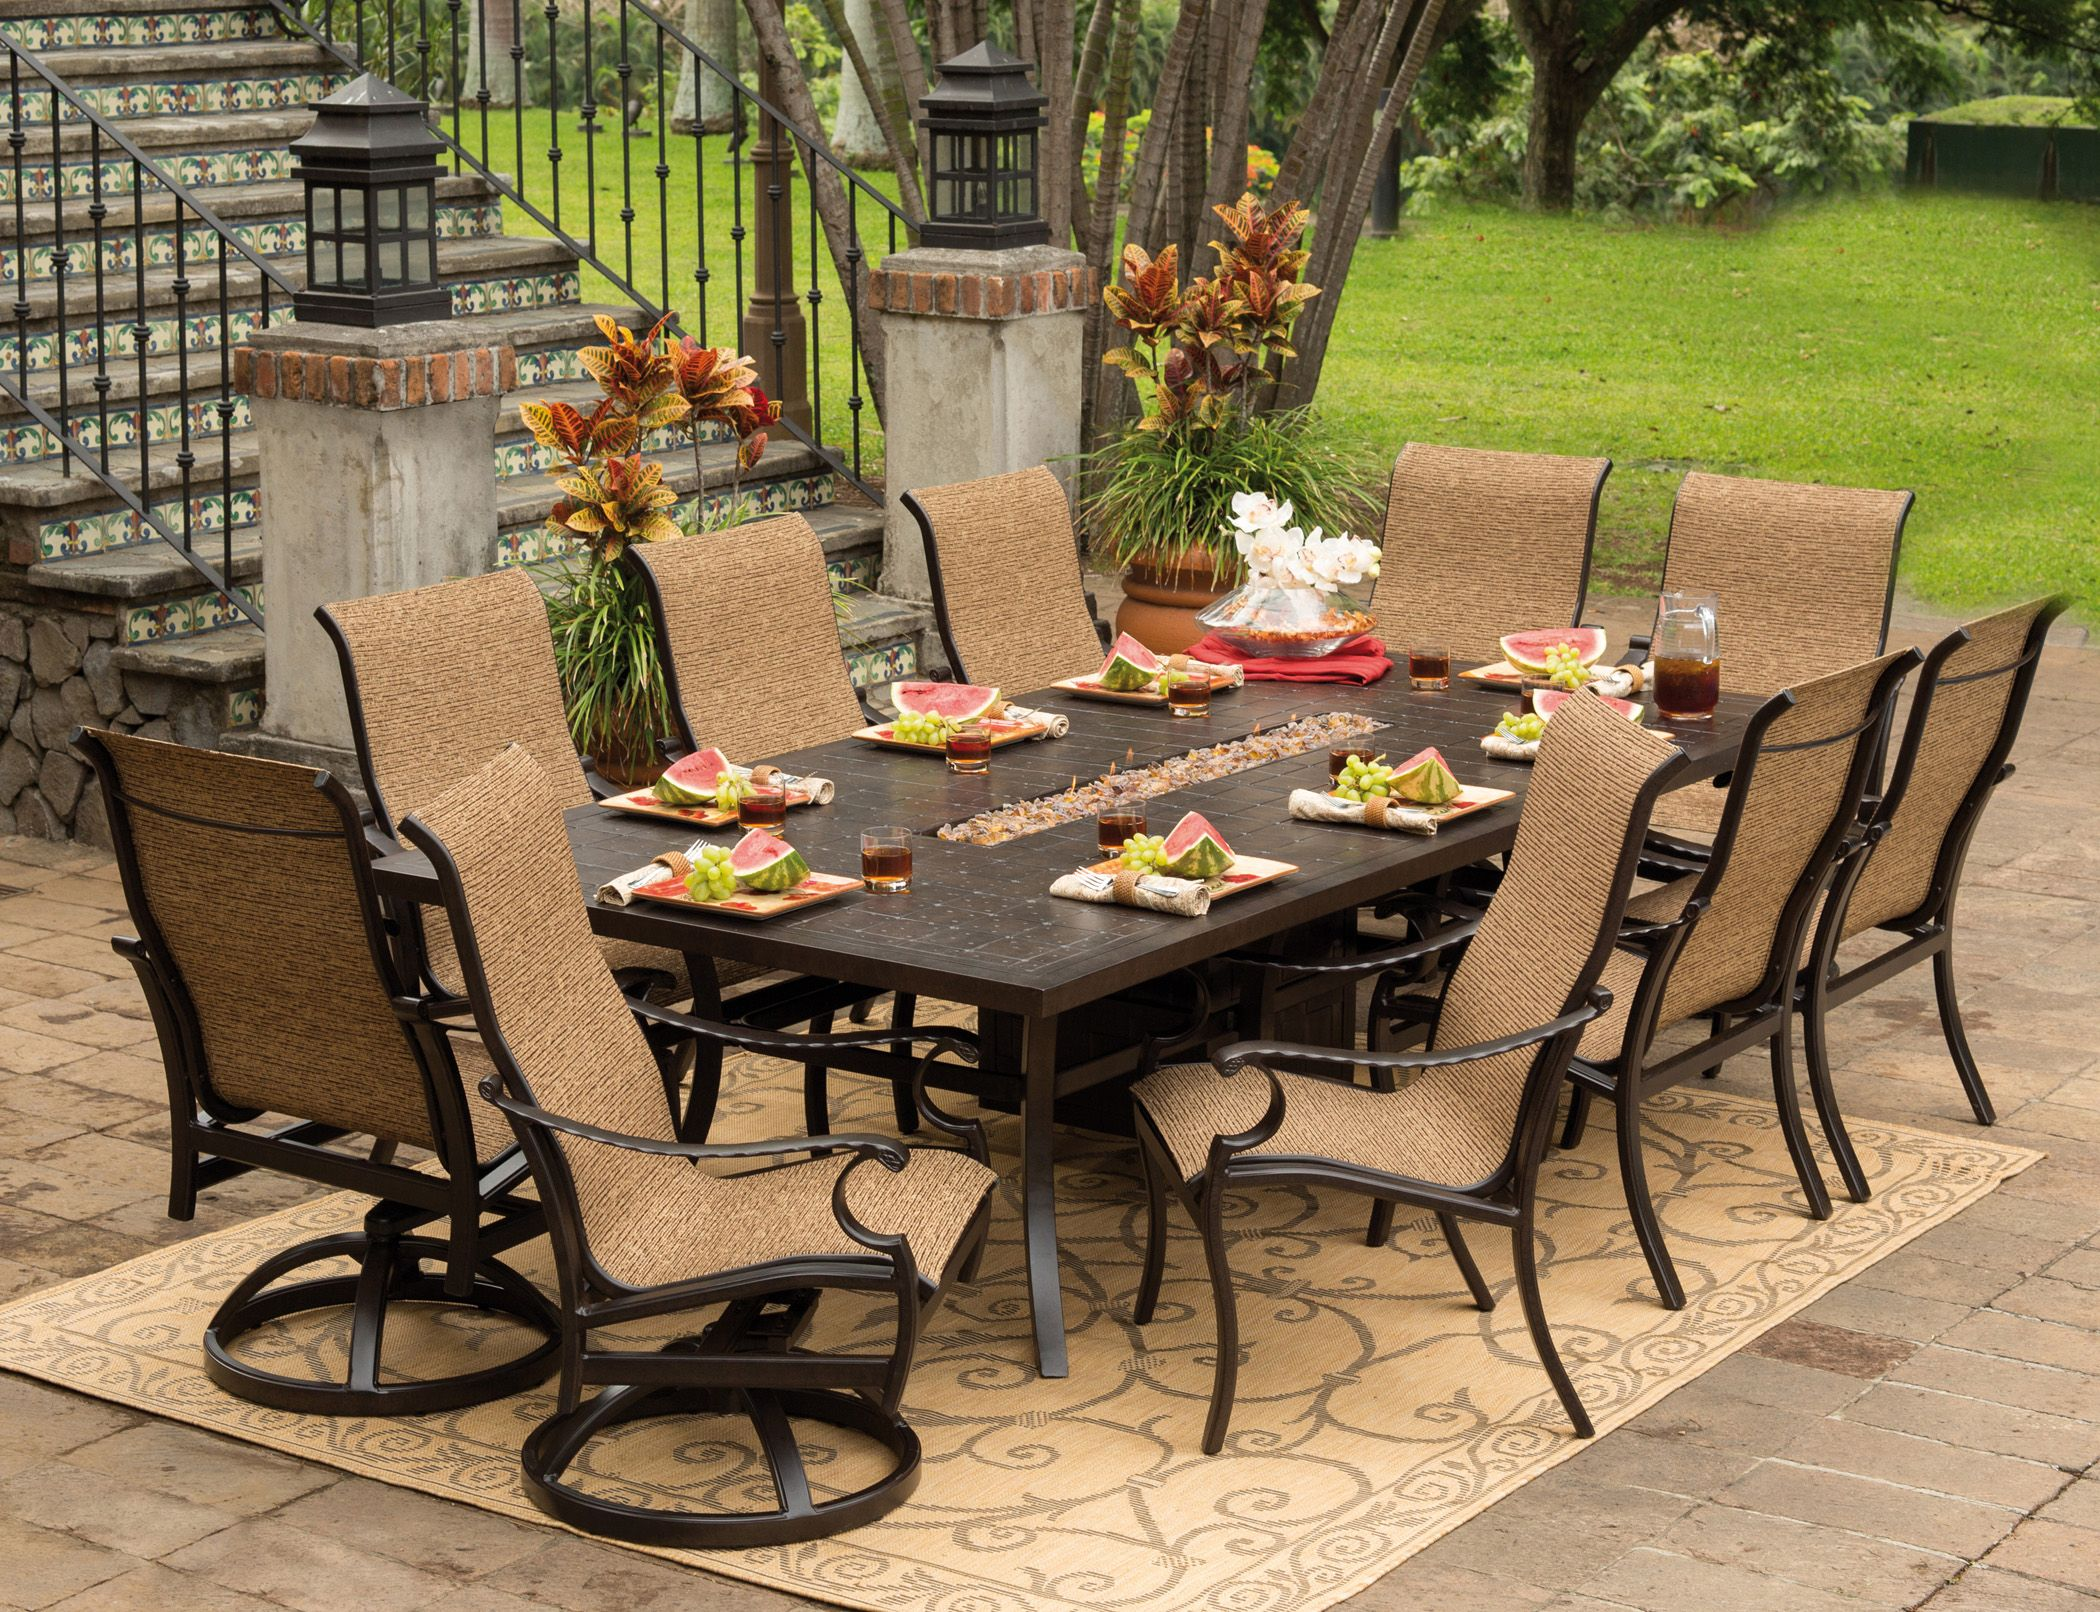 Fire Feature Dining Table From Pride Family Brands With Sling